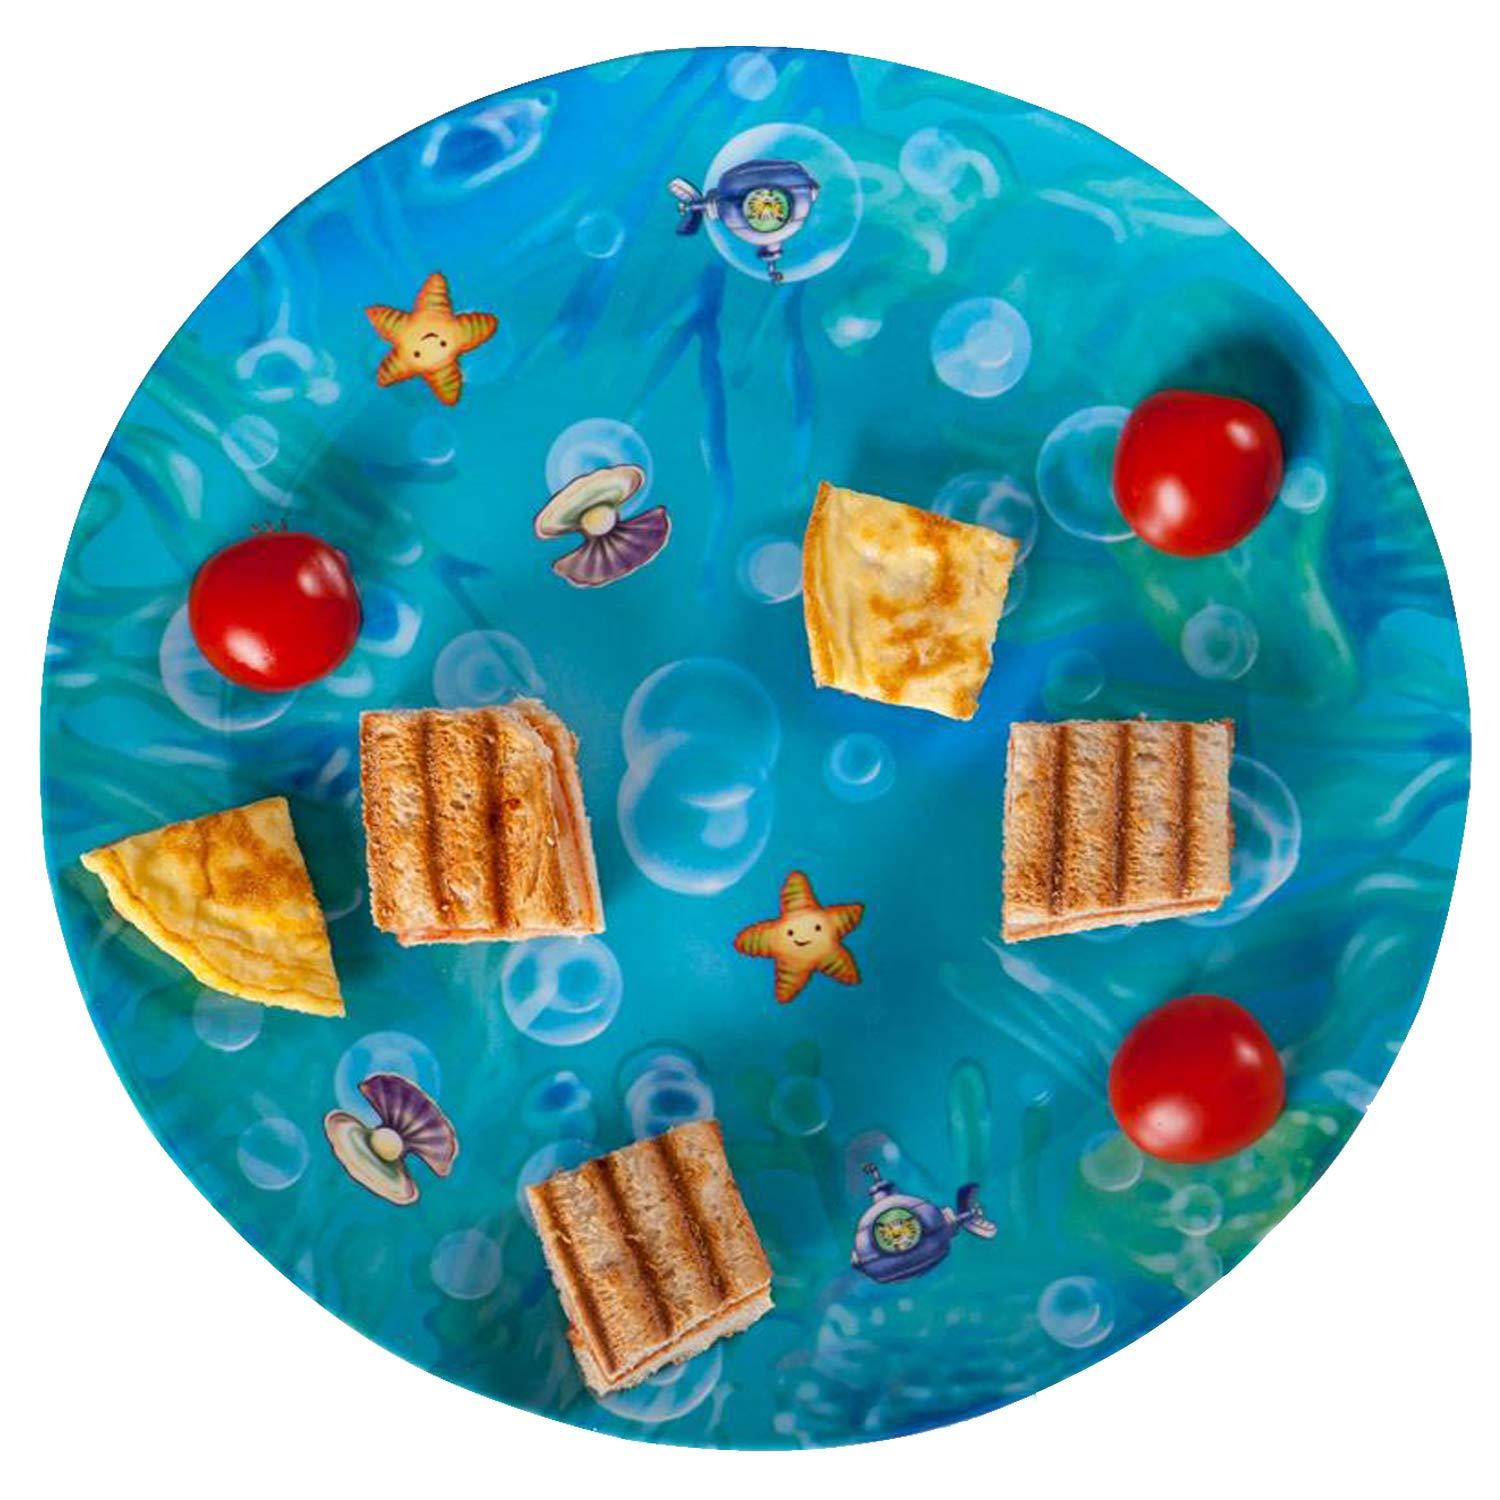 Playte Kids Plate Set of 3, MEMORY Games - Perfect for Difficult and Picky Eaters - Turn Meal Time Into Play Time. Fun Activity Keeping the Focus on Food [Ages 3-8] Melamine BPA Free